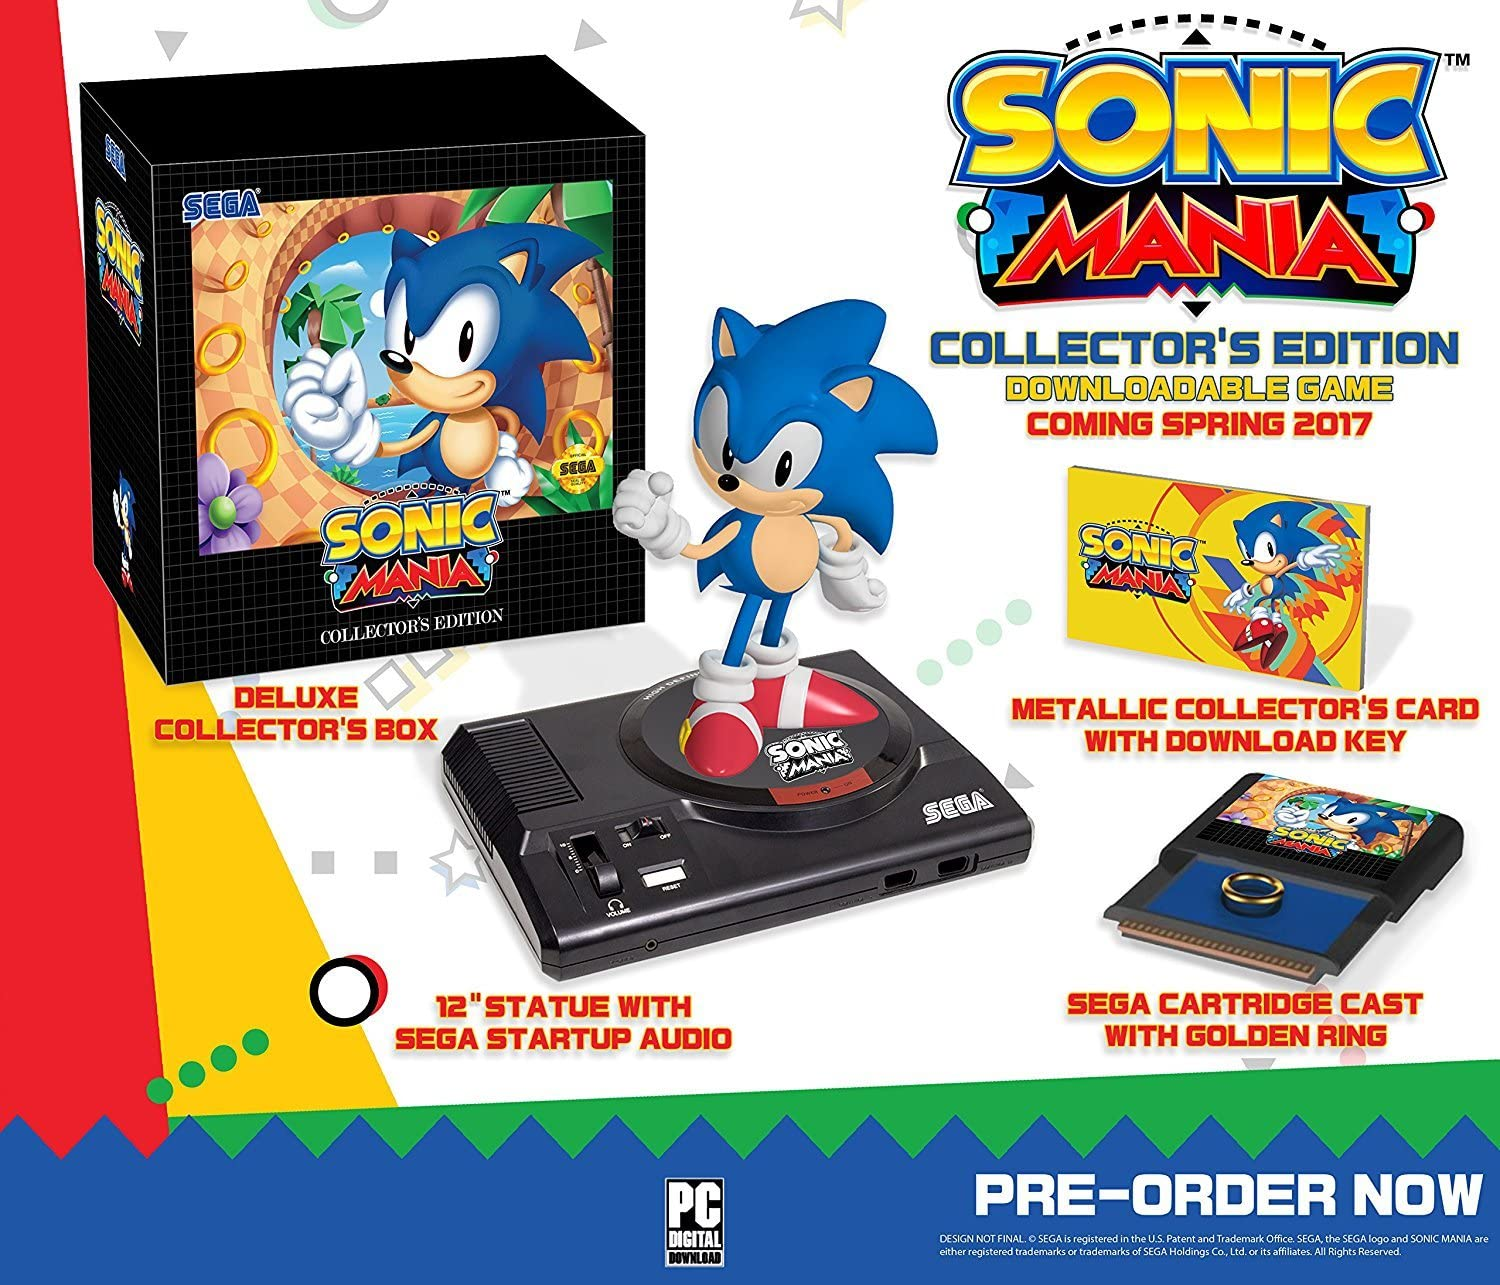 Amazon com: Sonic Mania: Collector's Edition - Xbox One: Video Games